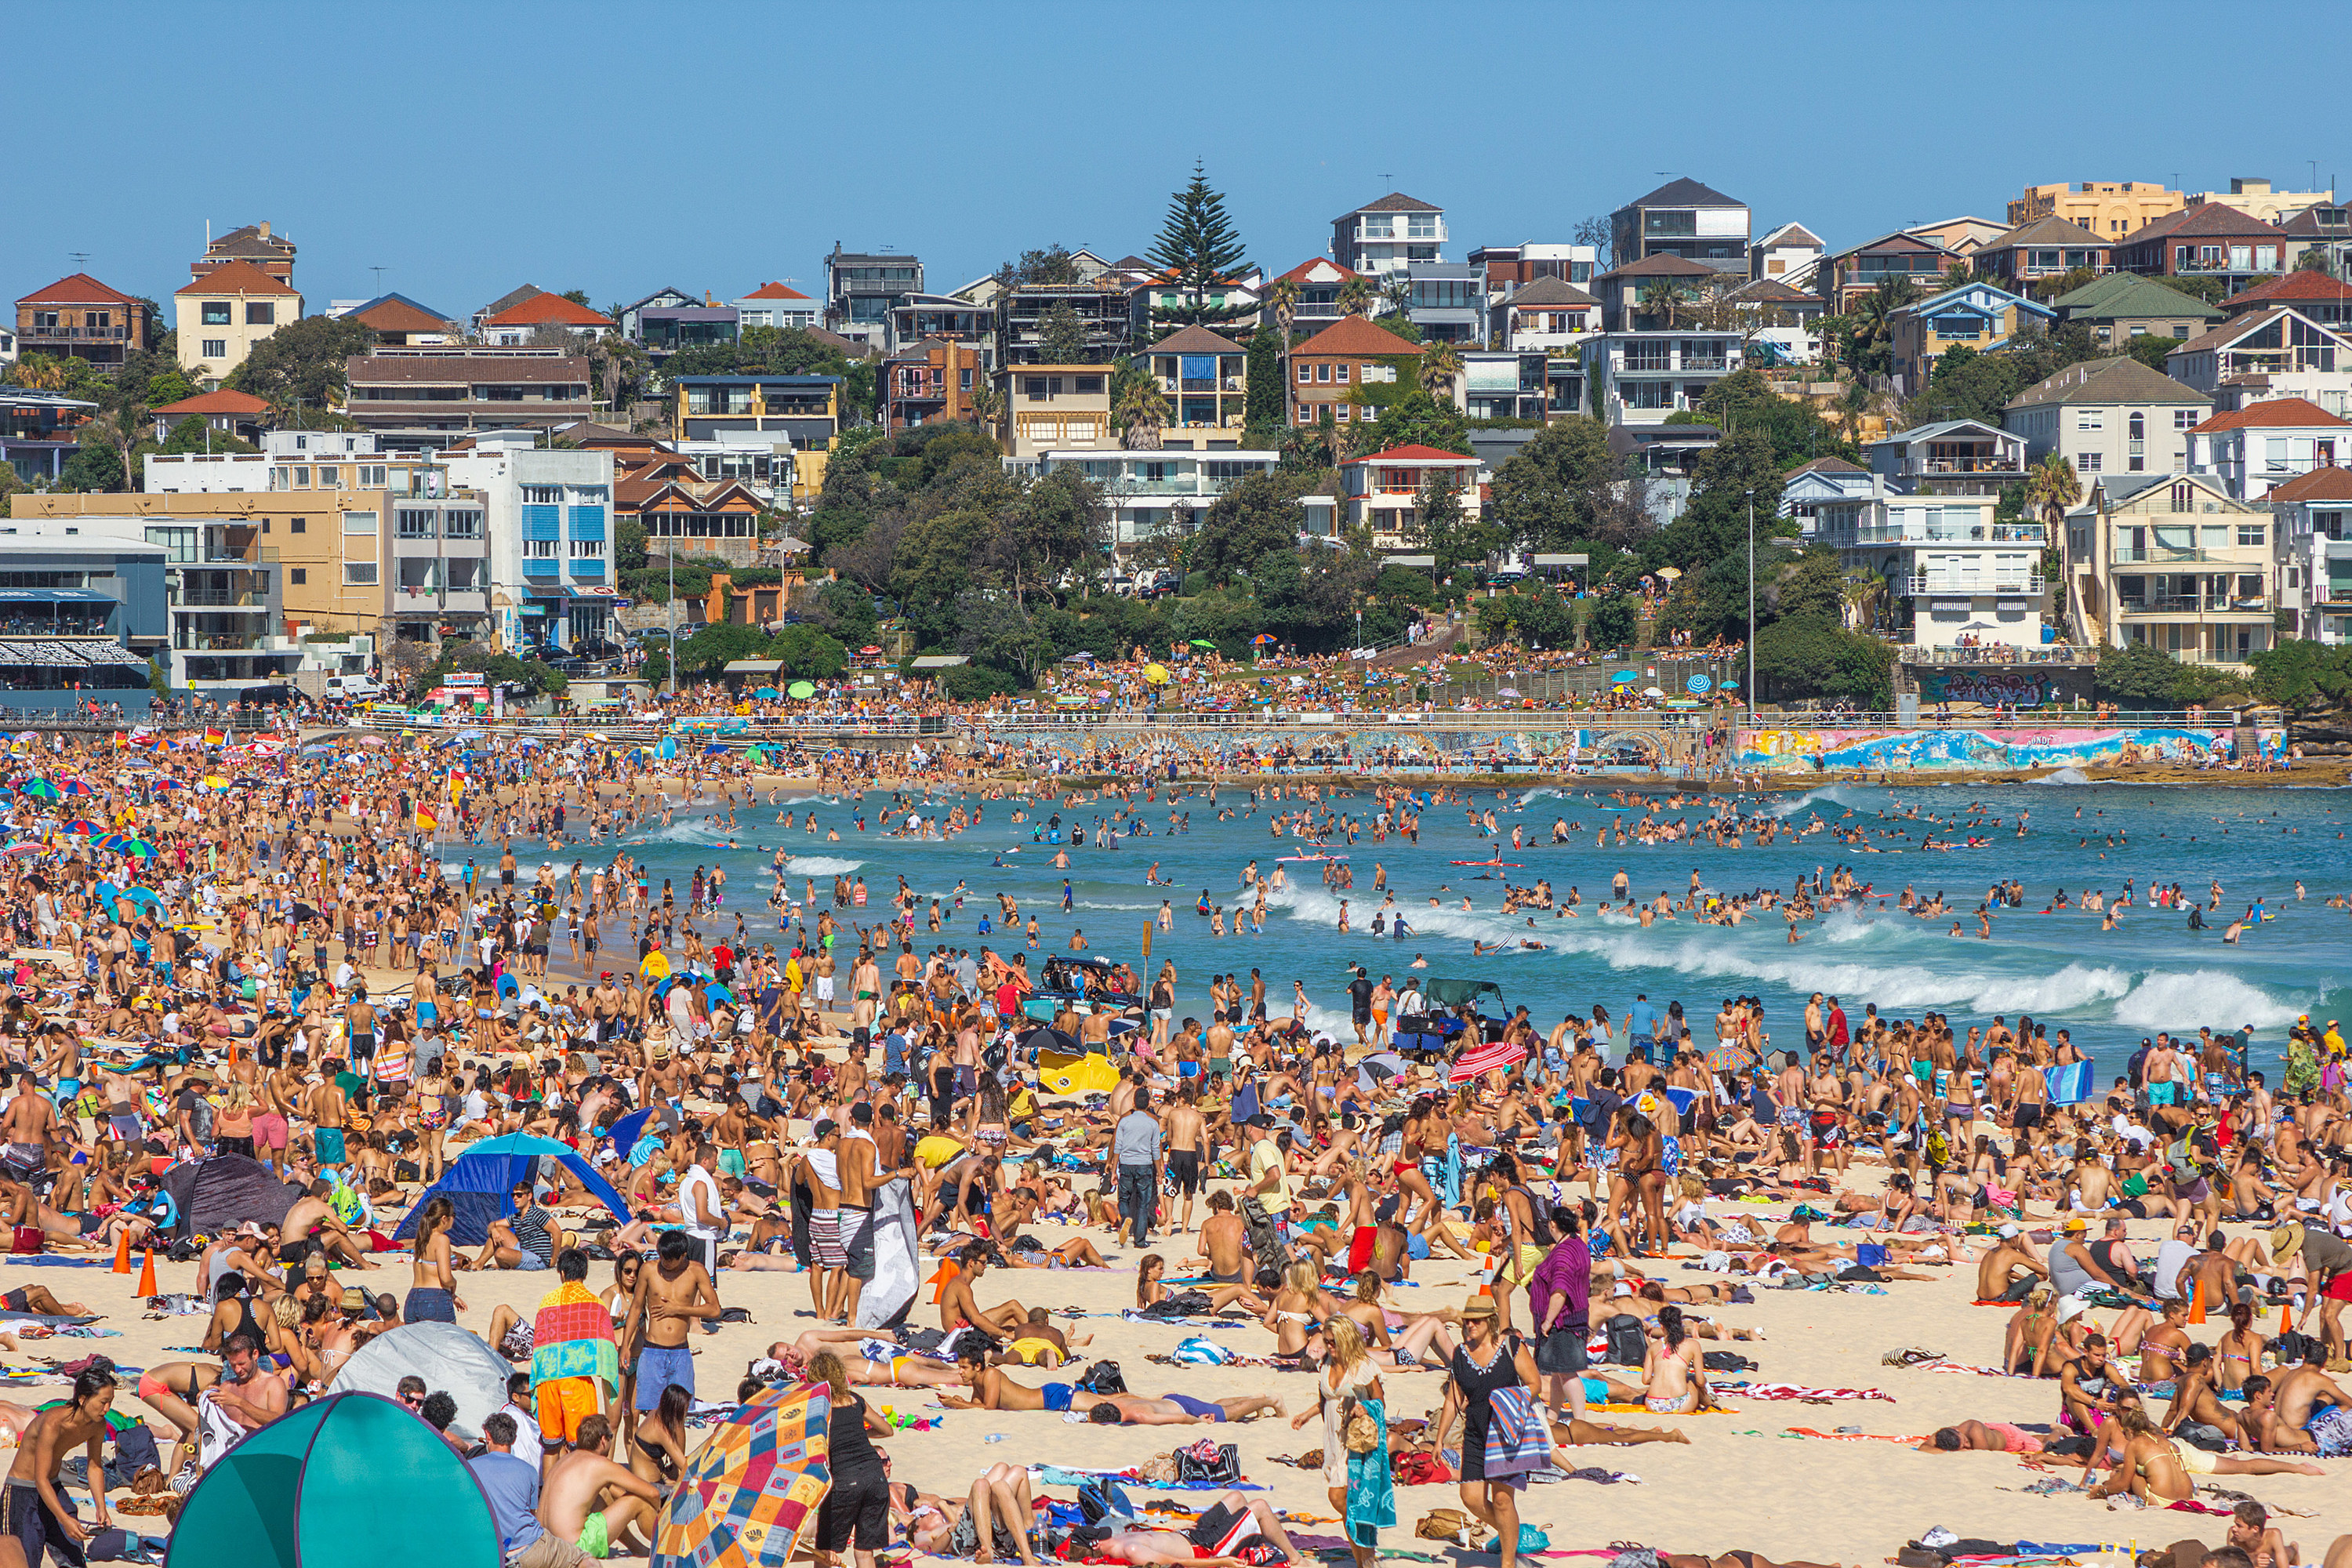 A busy, crowded Australian beach